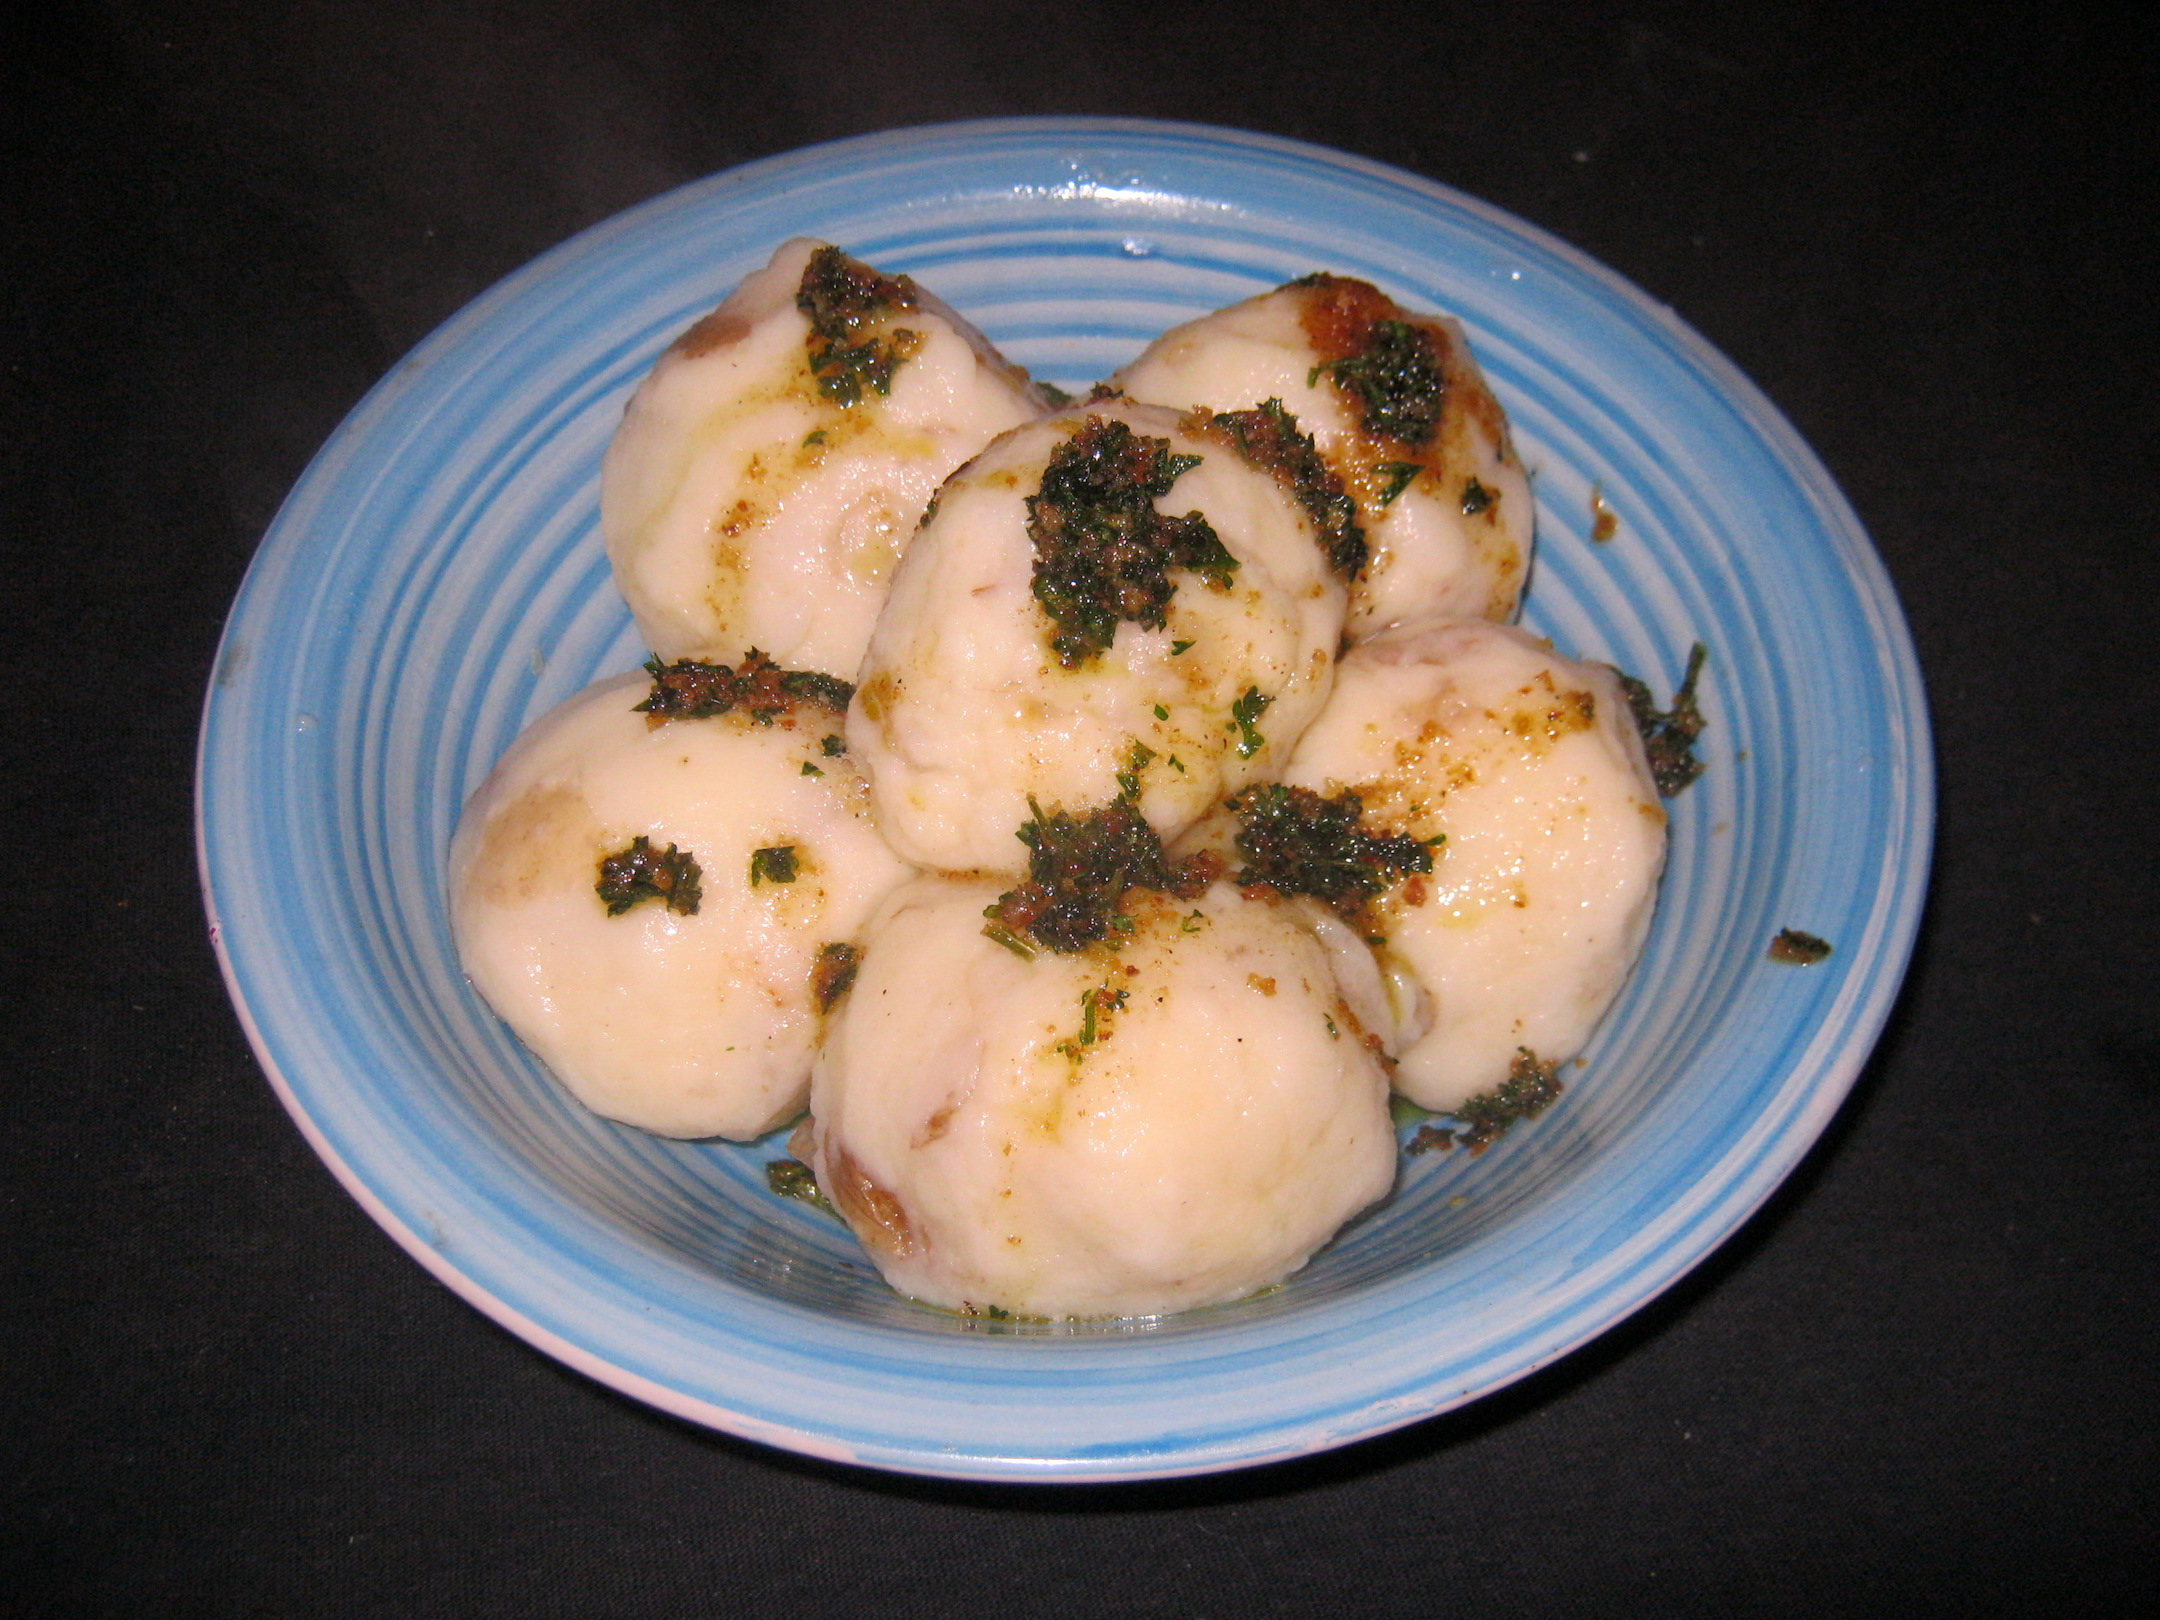 Potato dumplings with roasted parsley butter